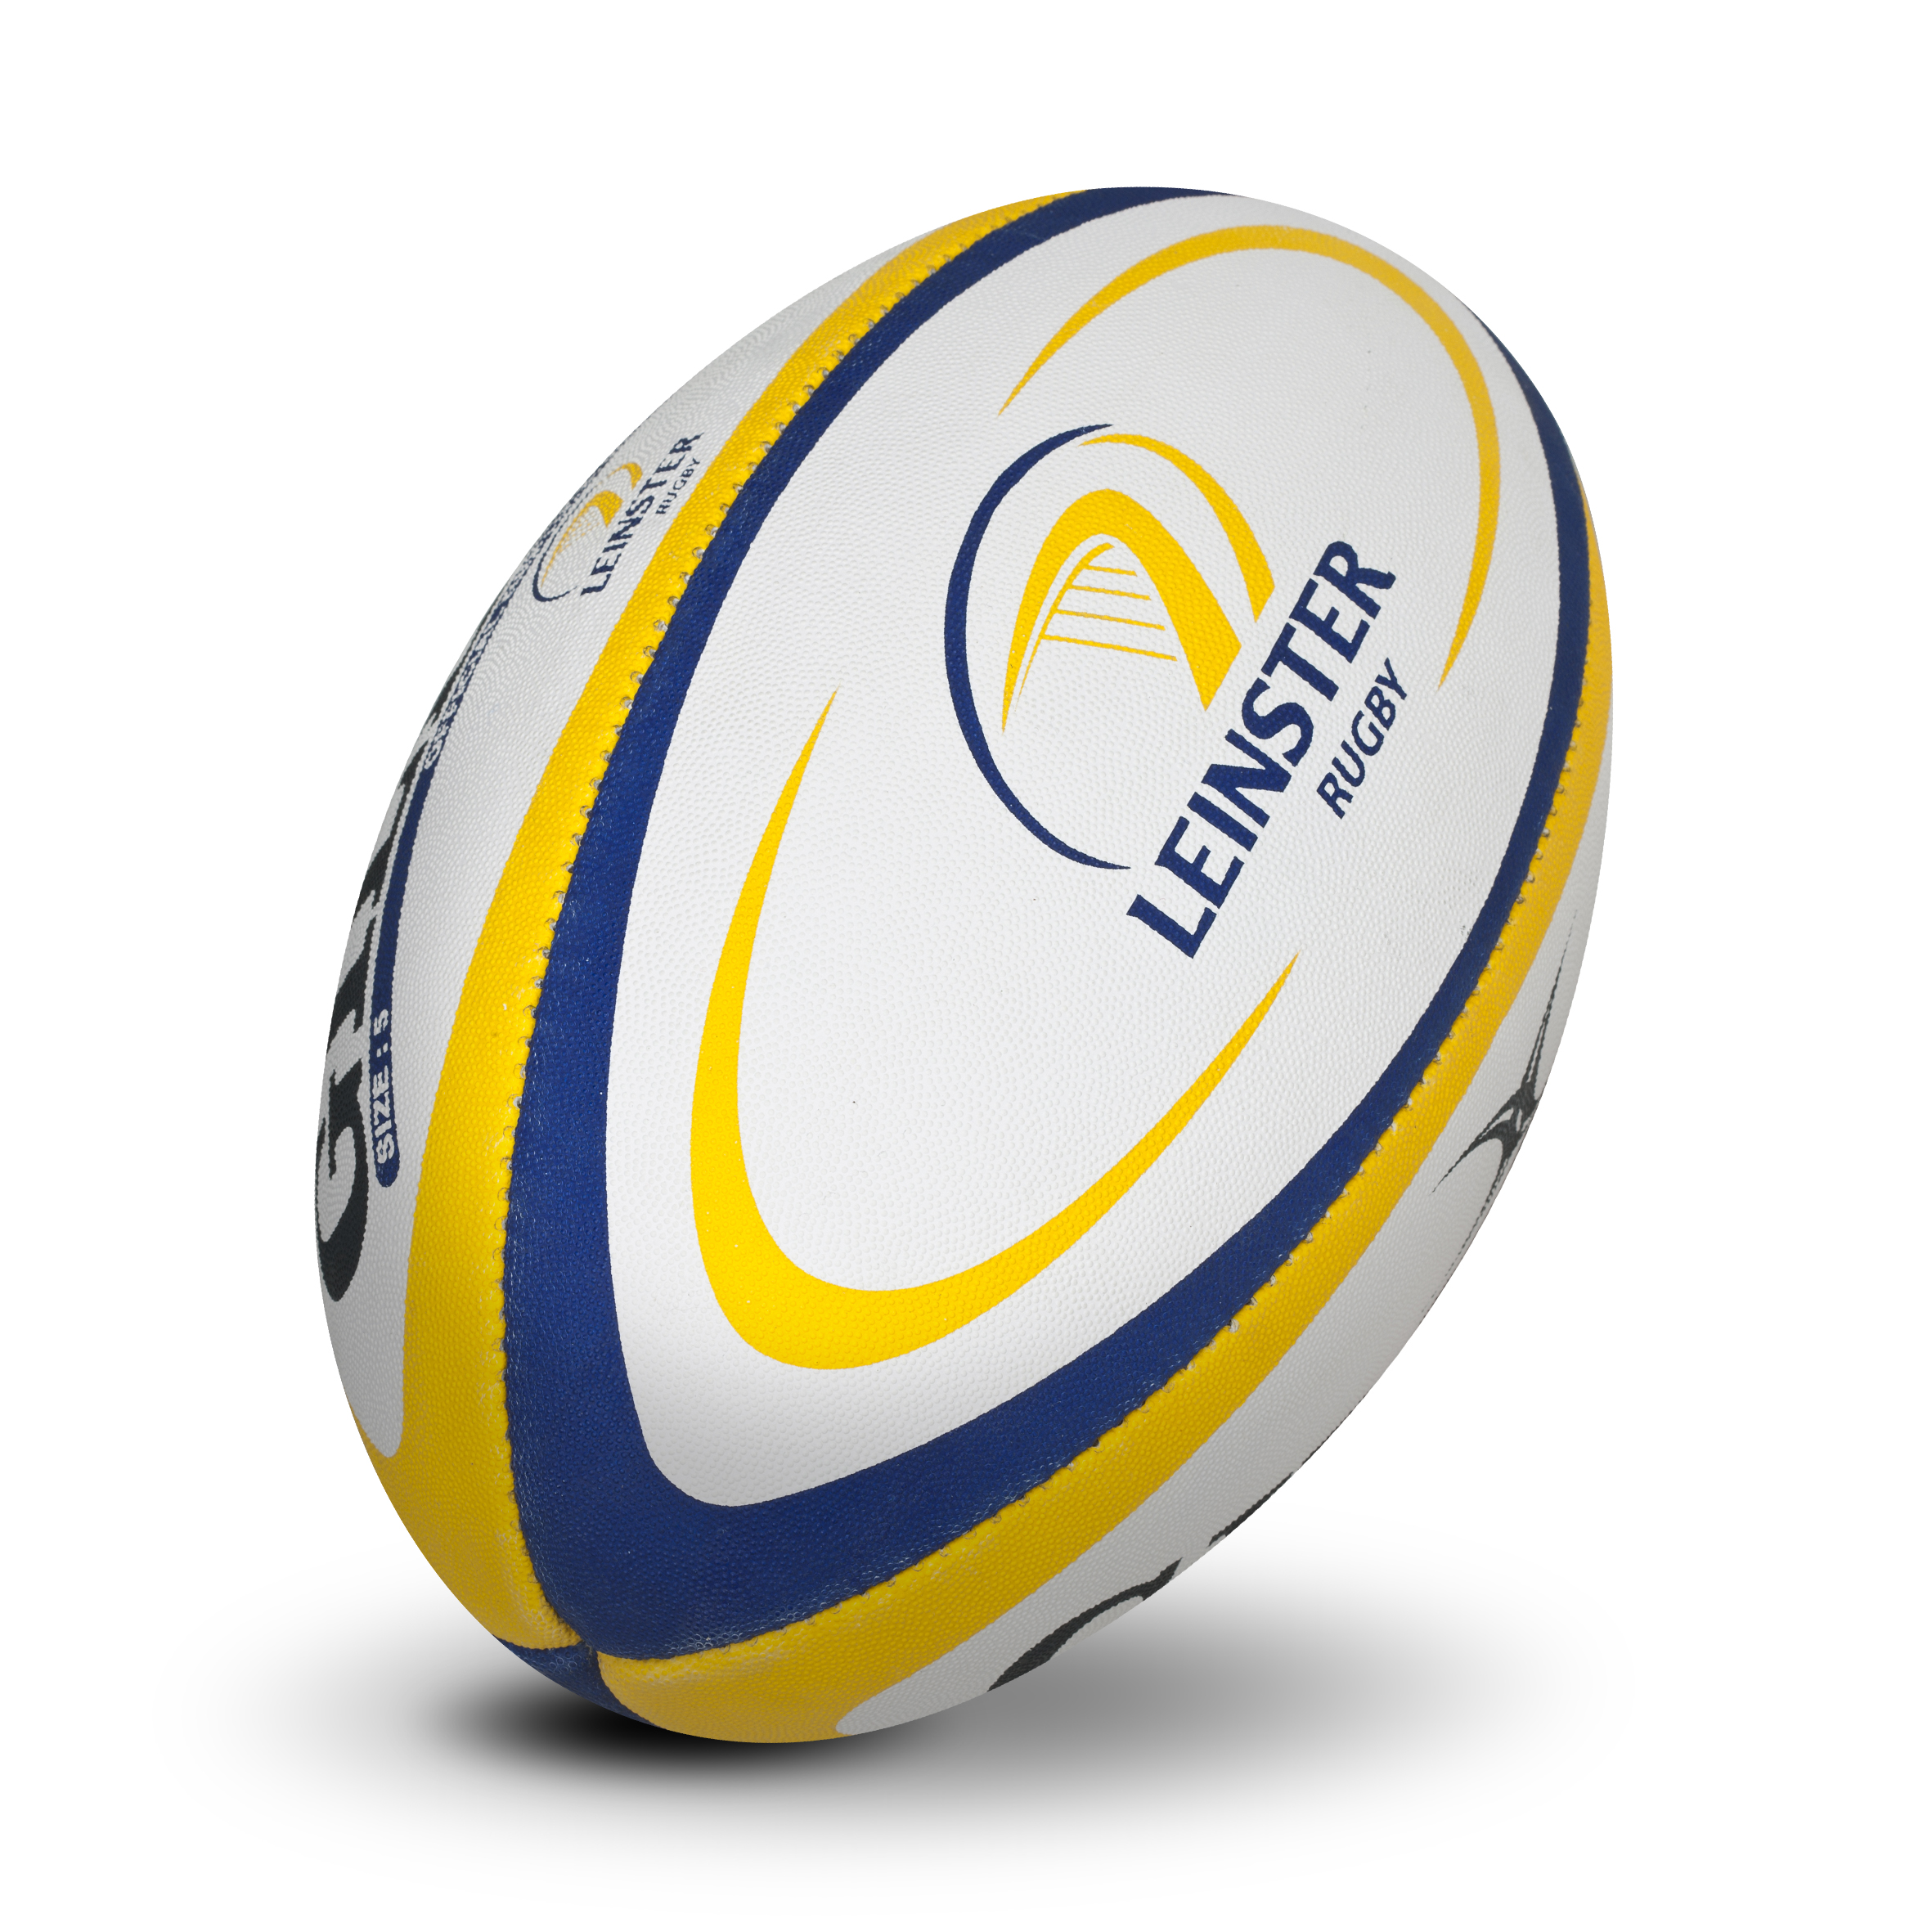 Gilbert Replica Rugby Ball - Size 5 - White/Yellow/Blue